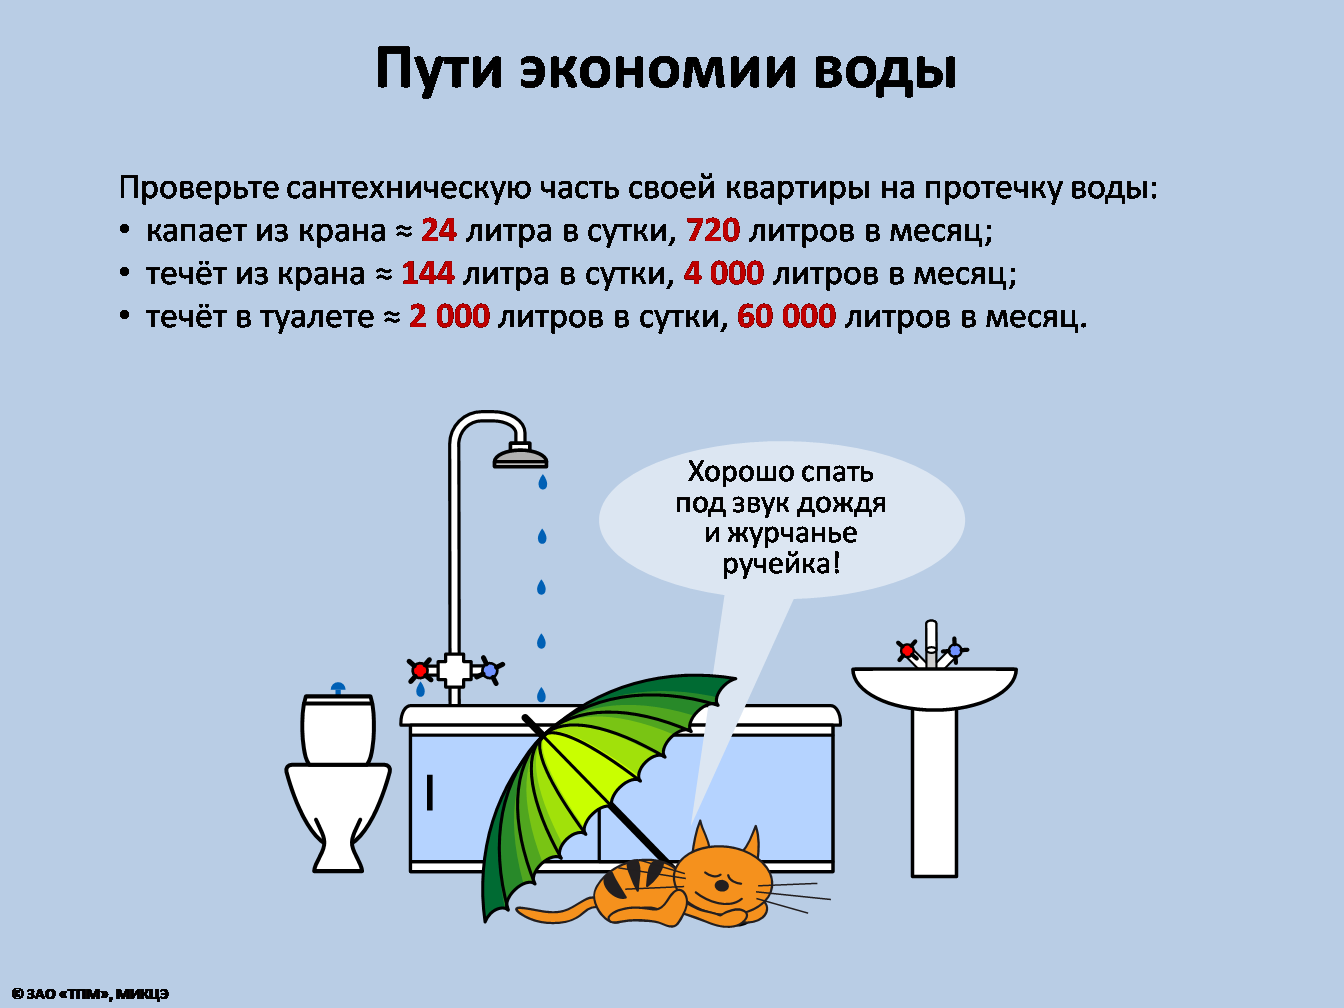 http://gisee.ru/upload/iblock/465/4653e8cecdc9ee3b99c12b918c8a116c.png